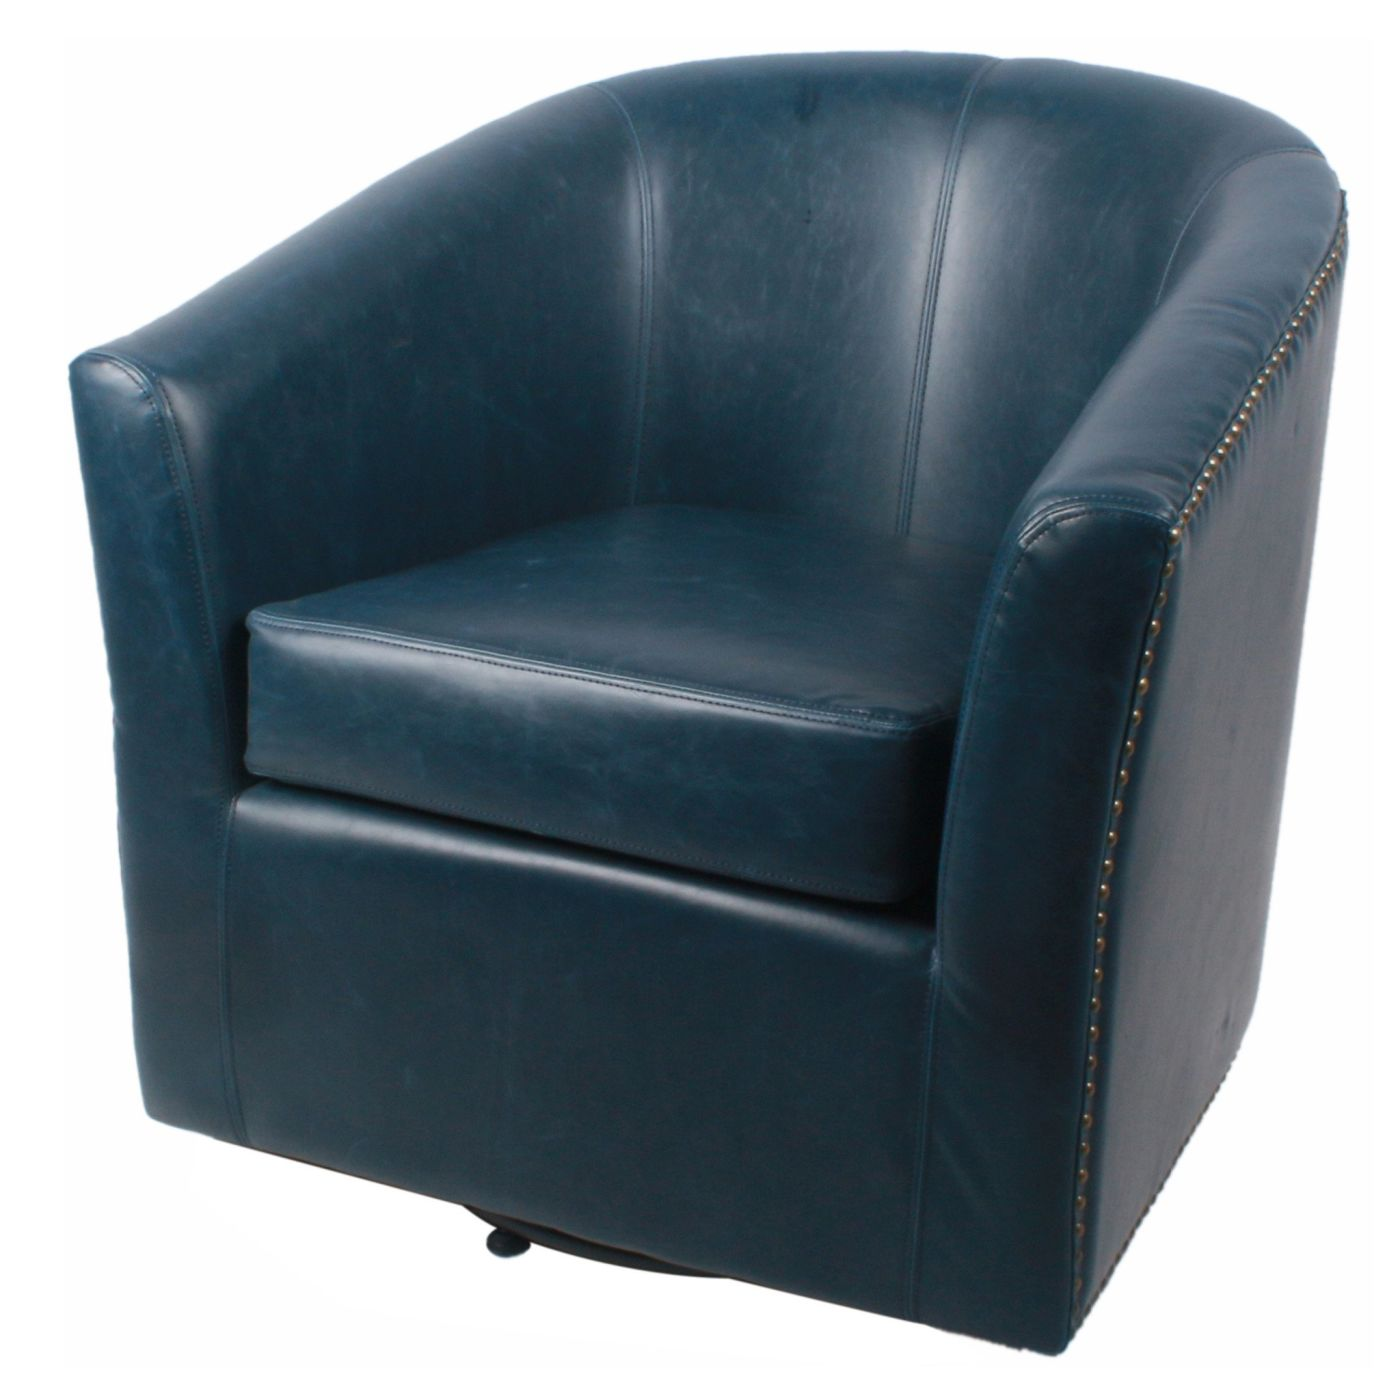 Superbe Blue Leather Chairs At Contemporary Furniture Warehouse | Accent Chairs,  Armchairs, Dining Chairs, Lounge Chairs, Office Chairs